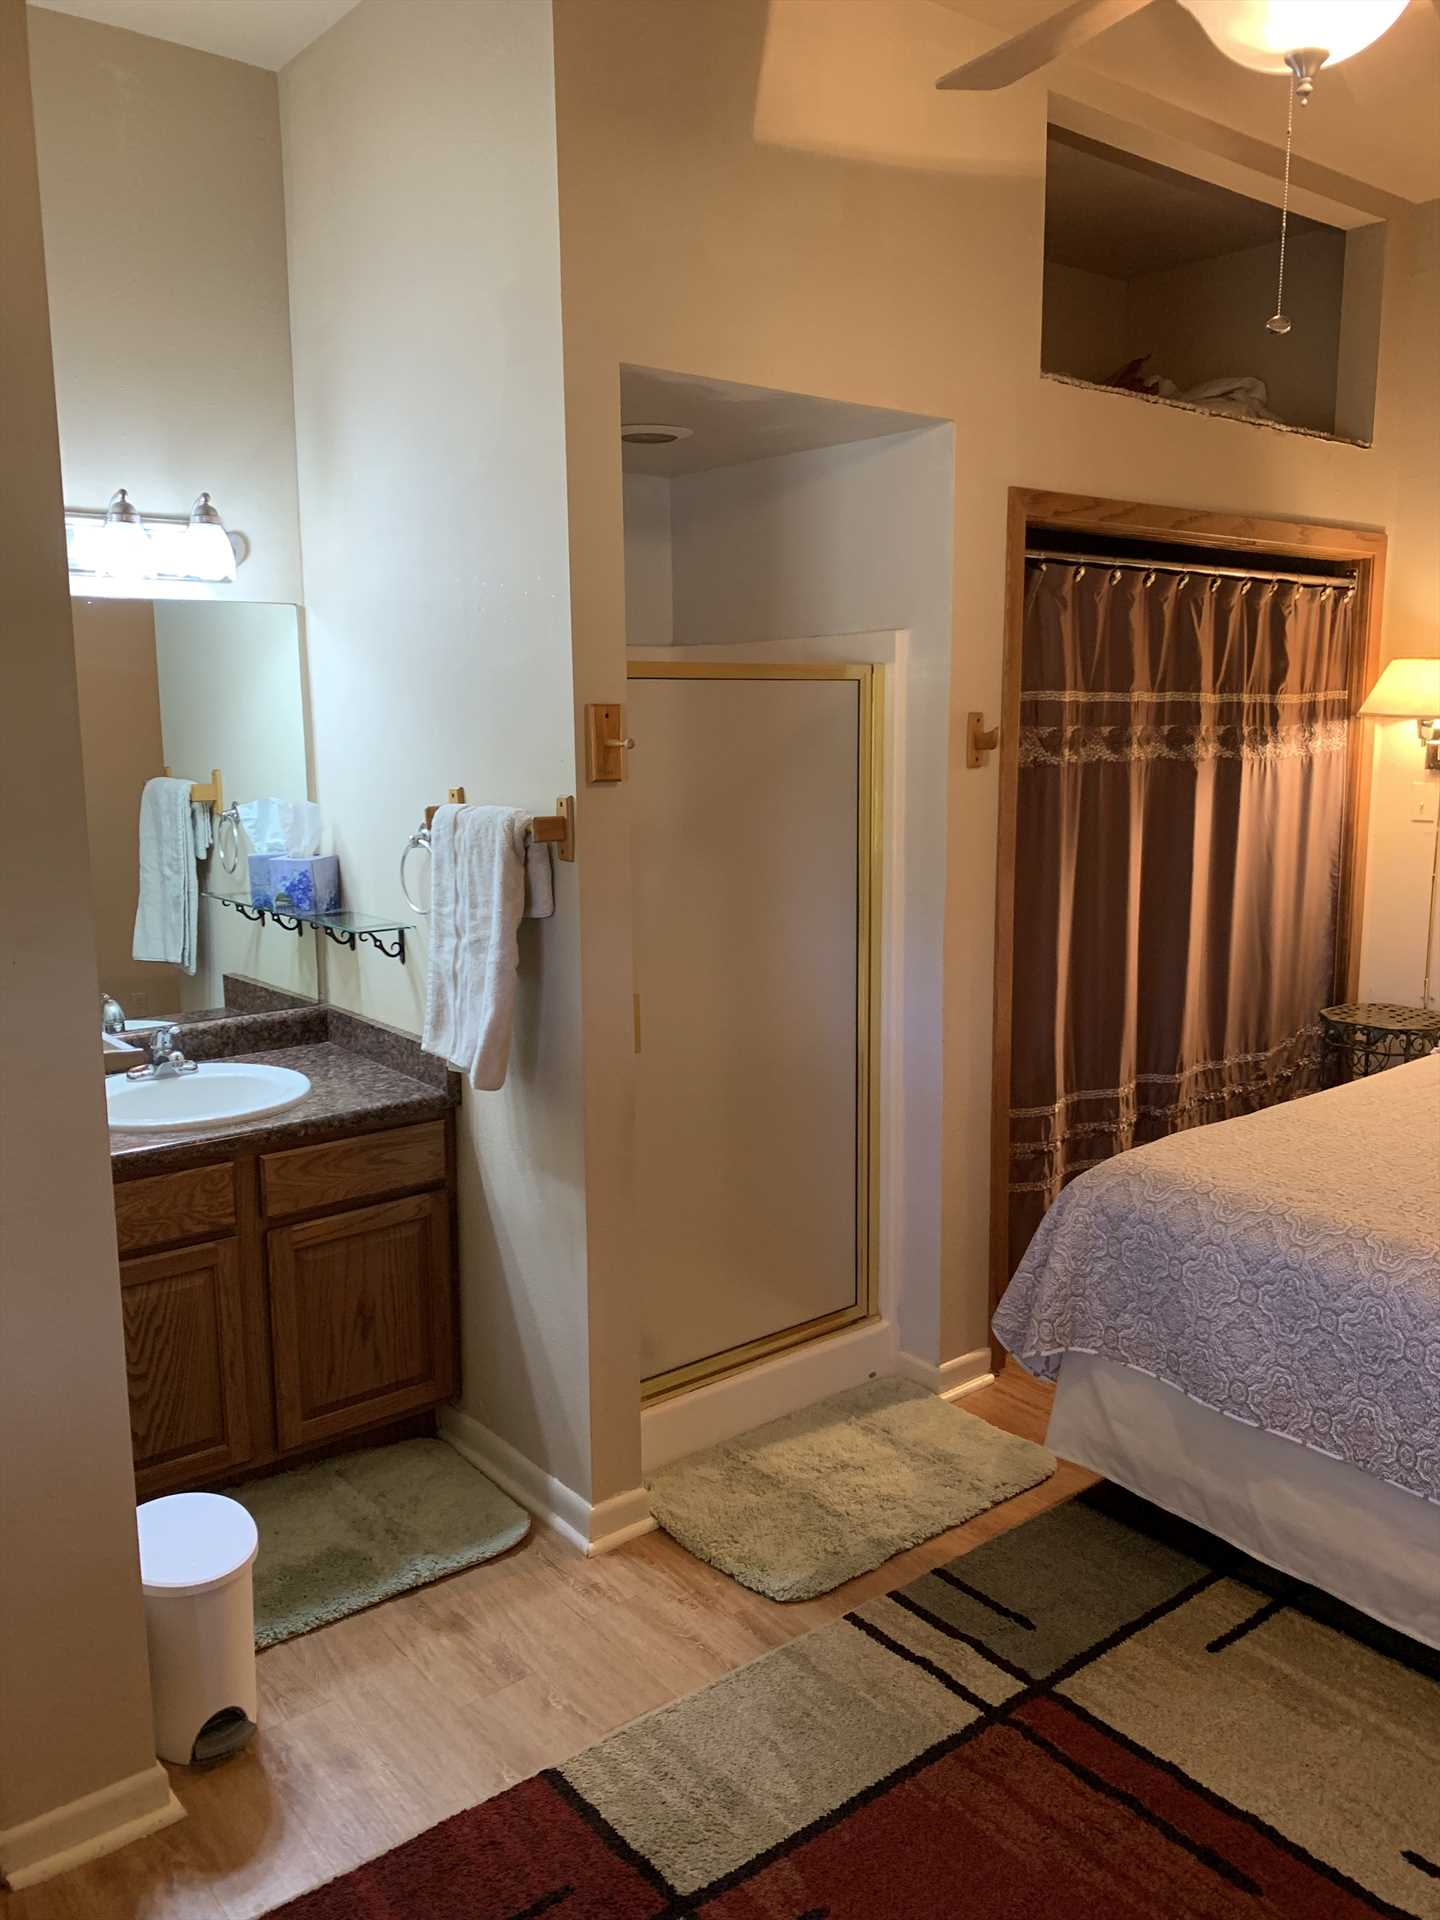 Cleanup's a breeze in the shower and mirrored vanity-and all bed and bath linens are provided for your stay.